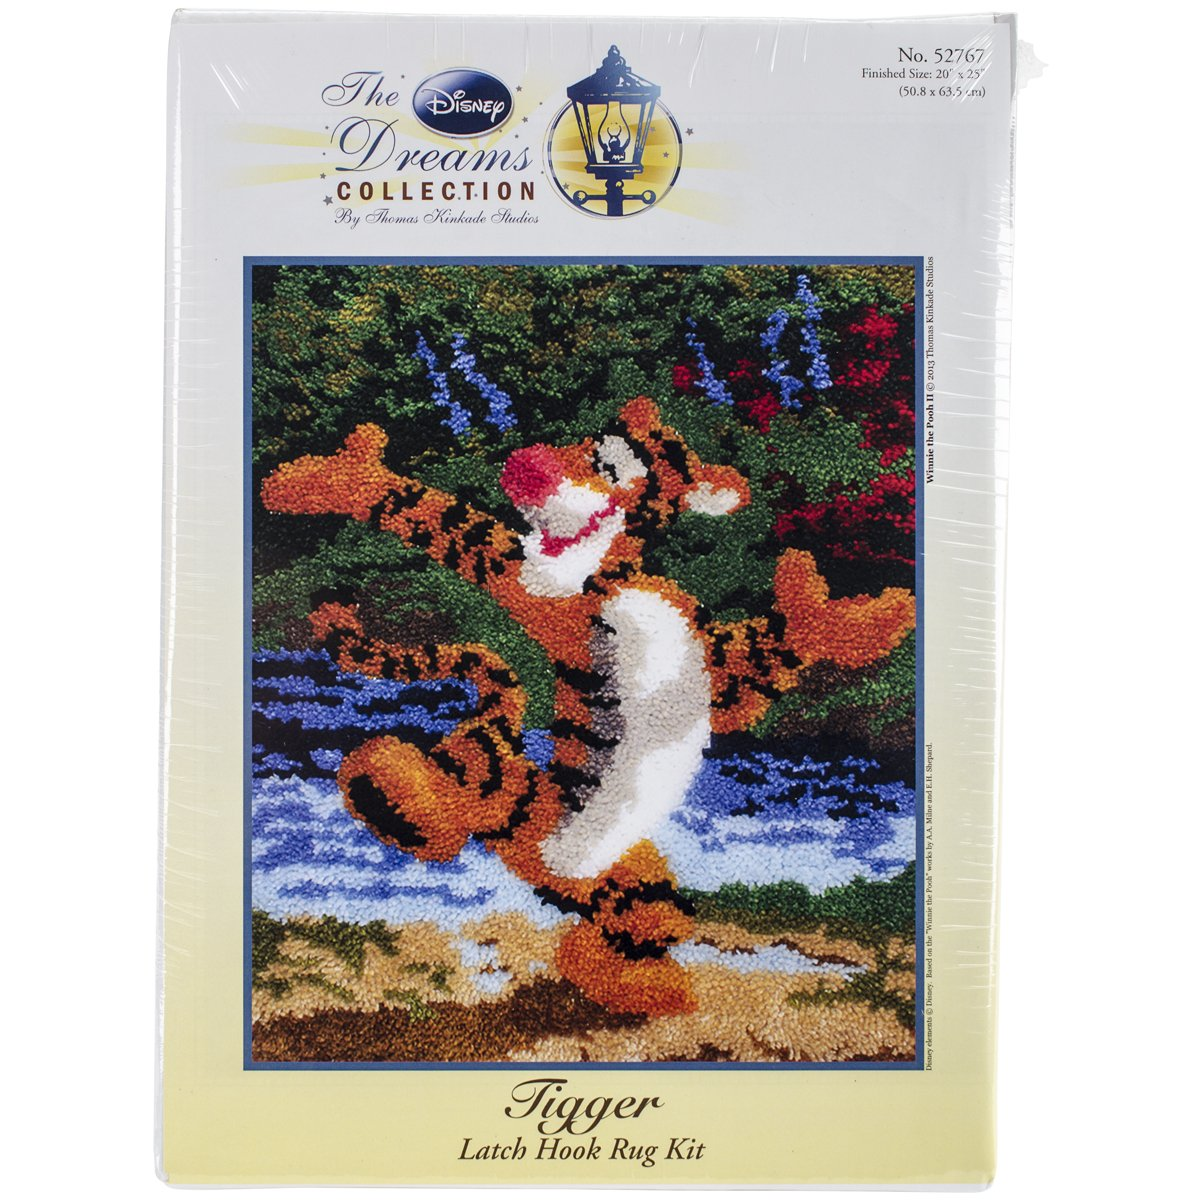 M.C.G. Textiles 52767 Tigger Rug Disney Dreams Collection by Thomas Kinkade Latch Hook Kit, 21 by 25-Inch MCG Textiles